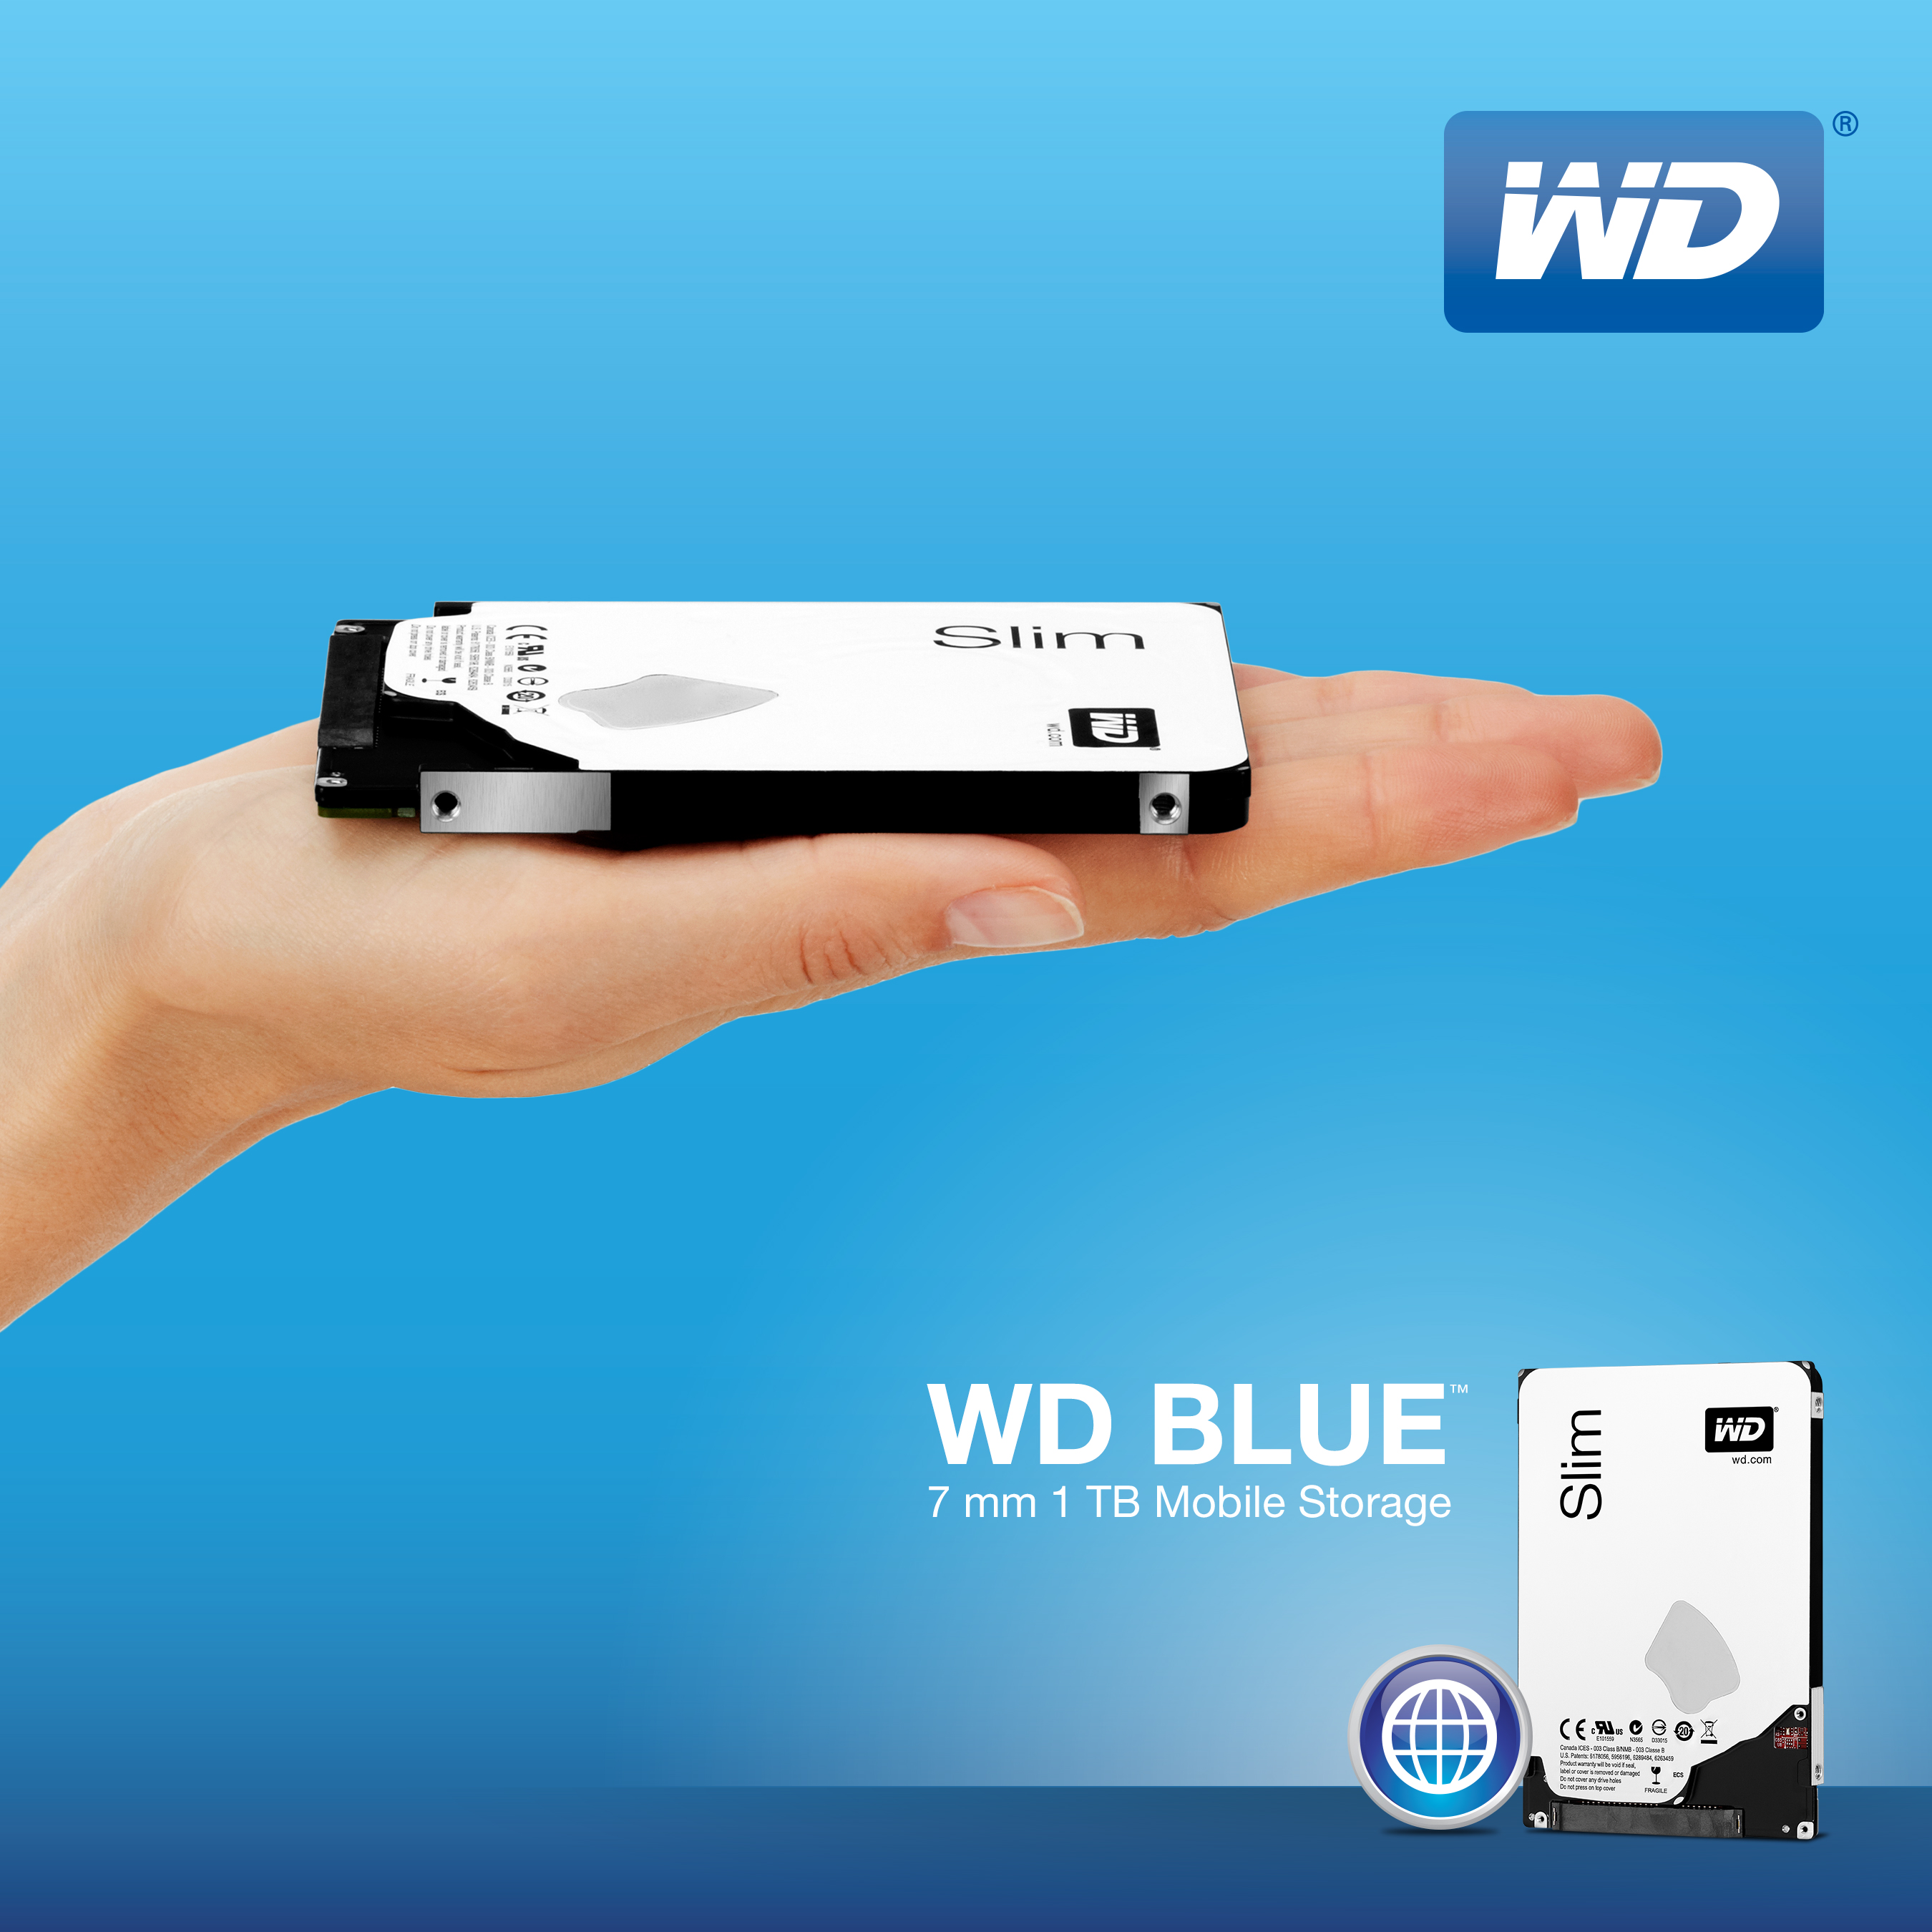 WD Delivers World's Thinnest ST 1TB Hard Drive~